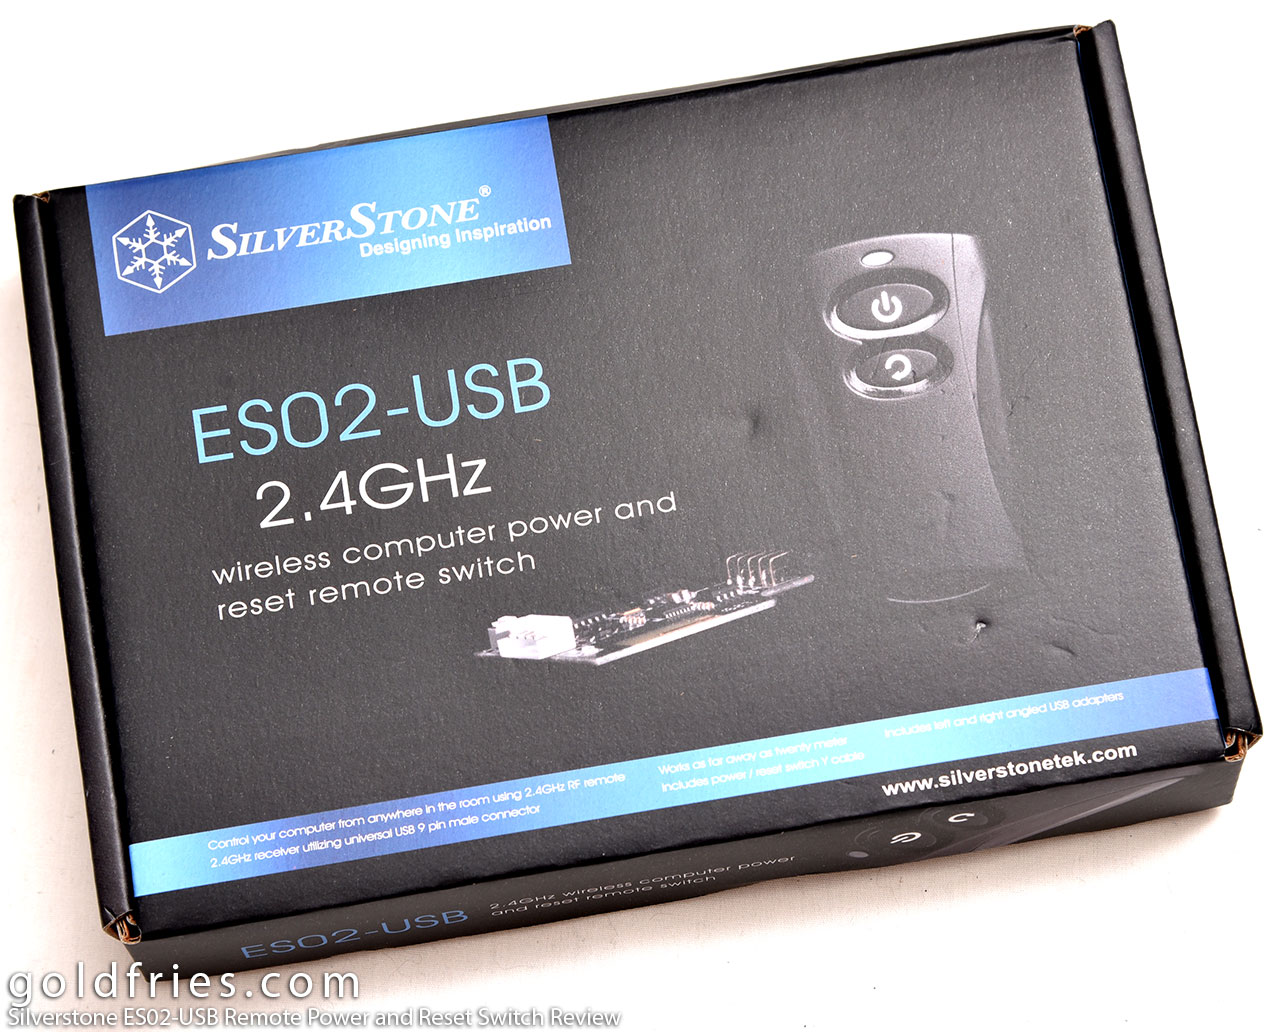 Silverstone ES02-USB Remote Power and Reset Switch Review